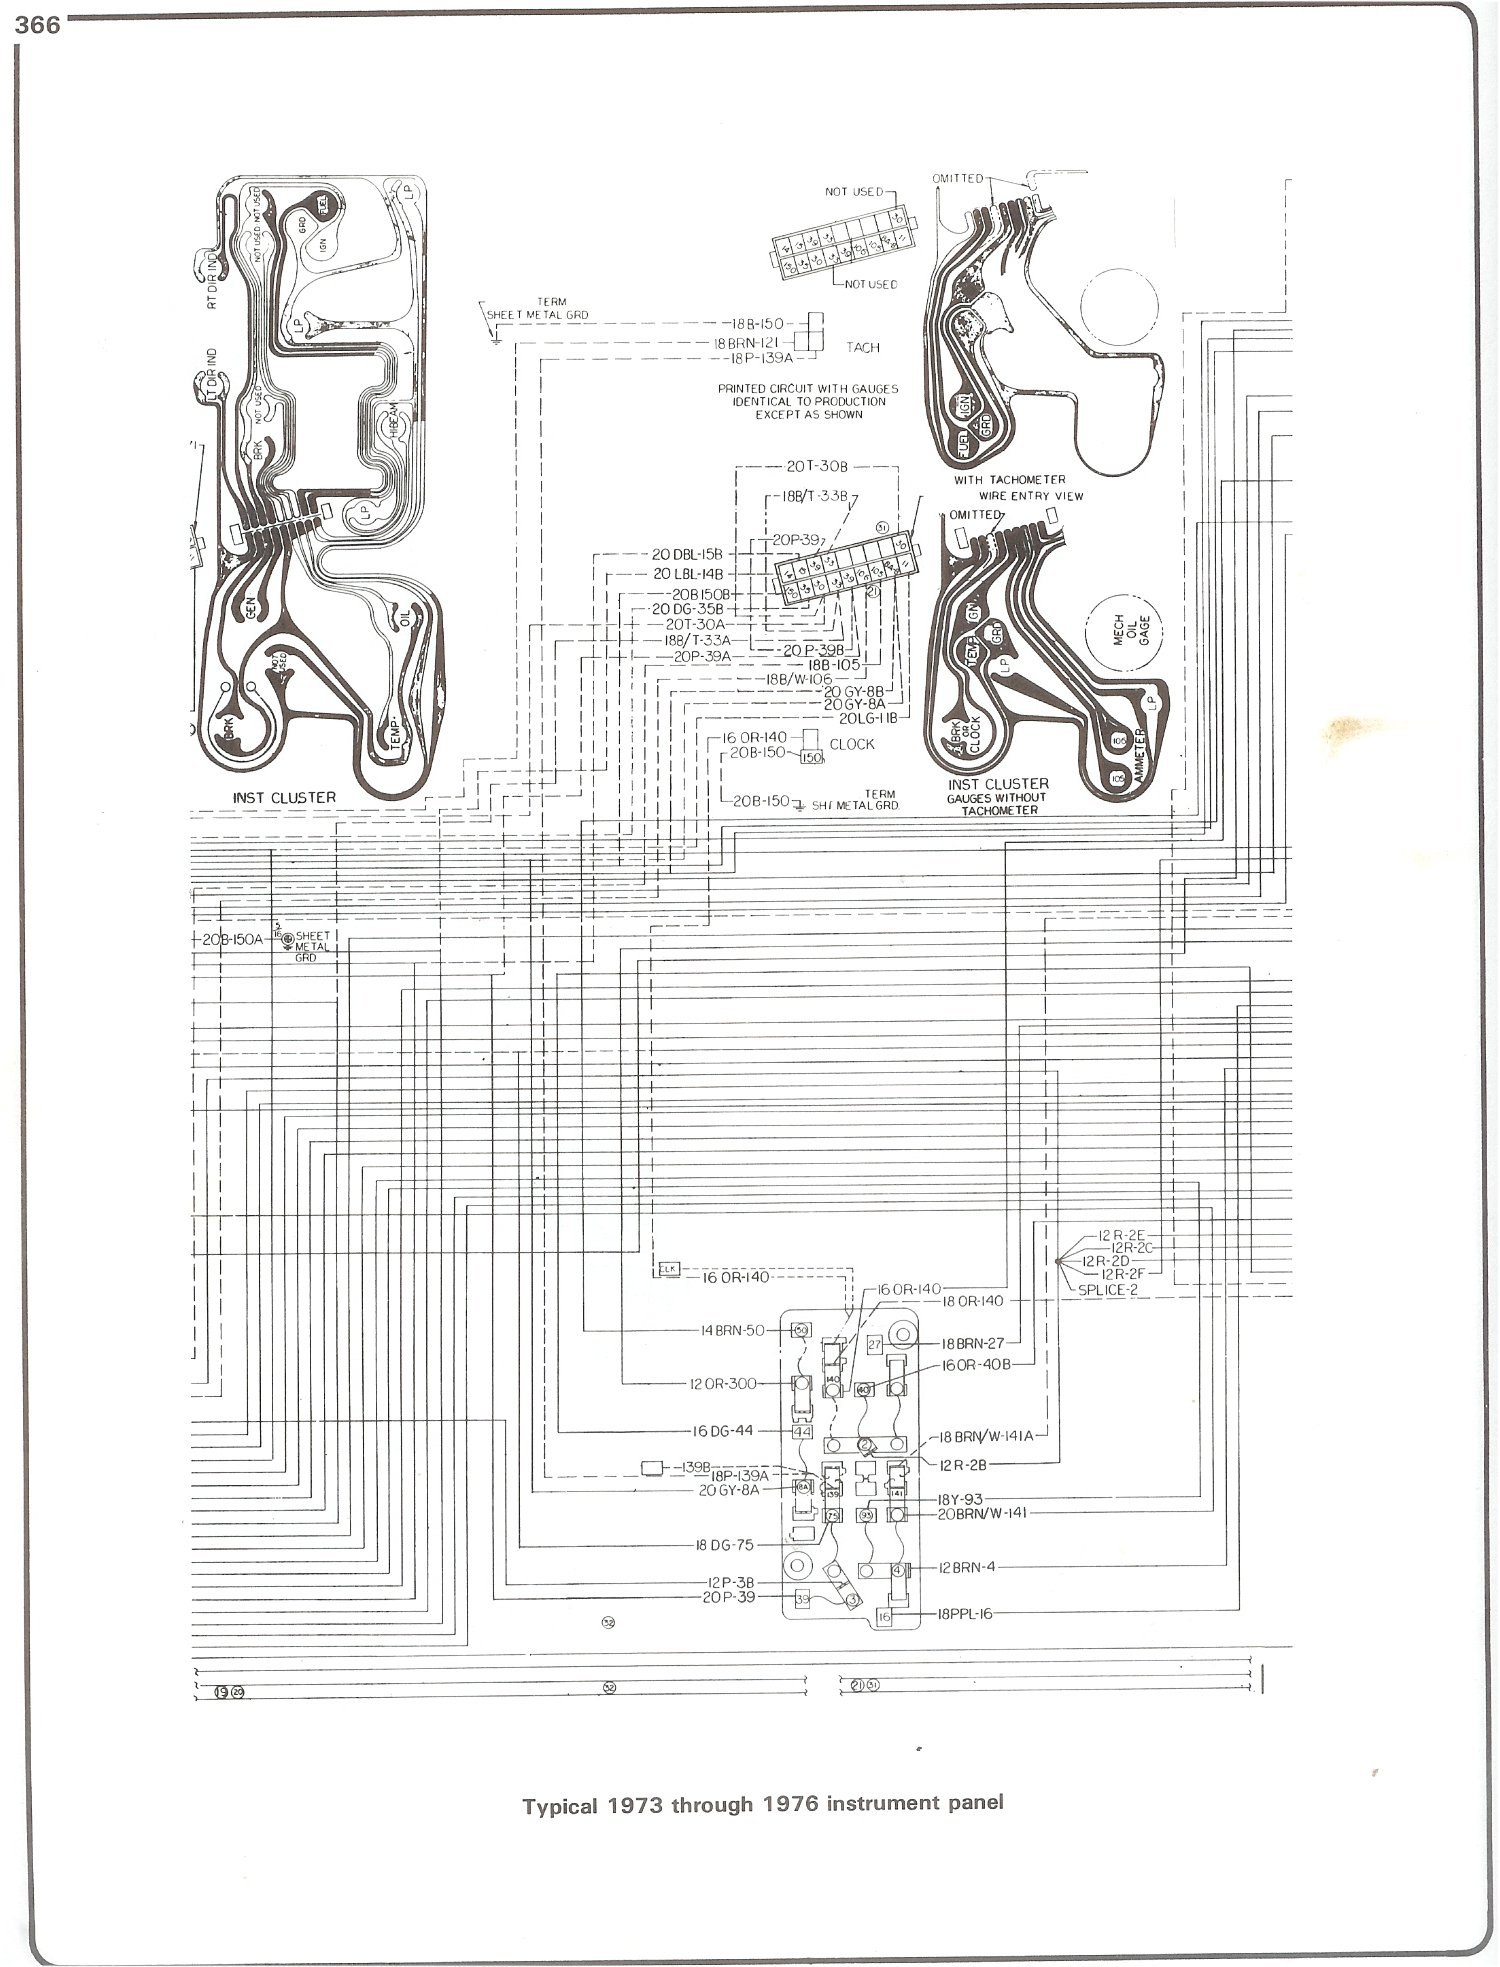 1988 Chevy 3500 Wiring Harness Diagram. Diagram. Auto